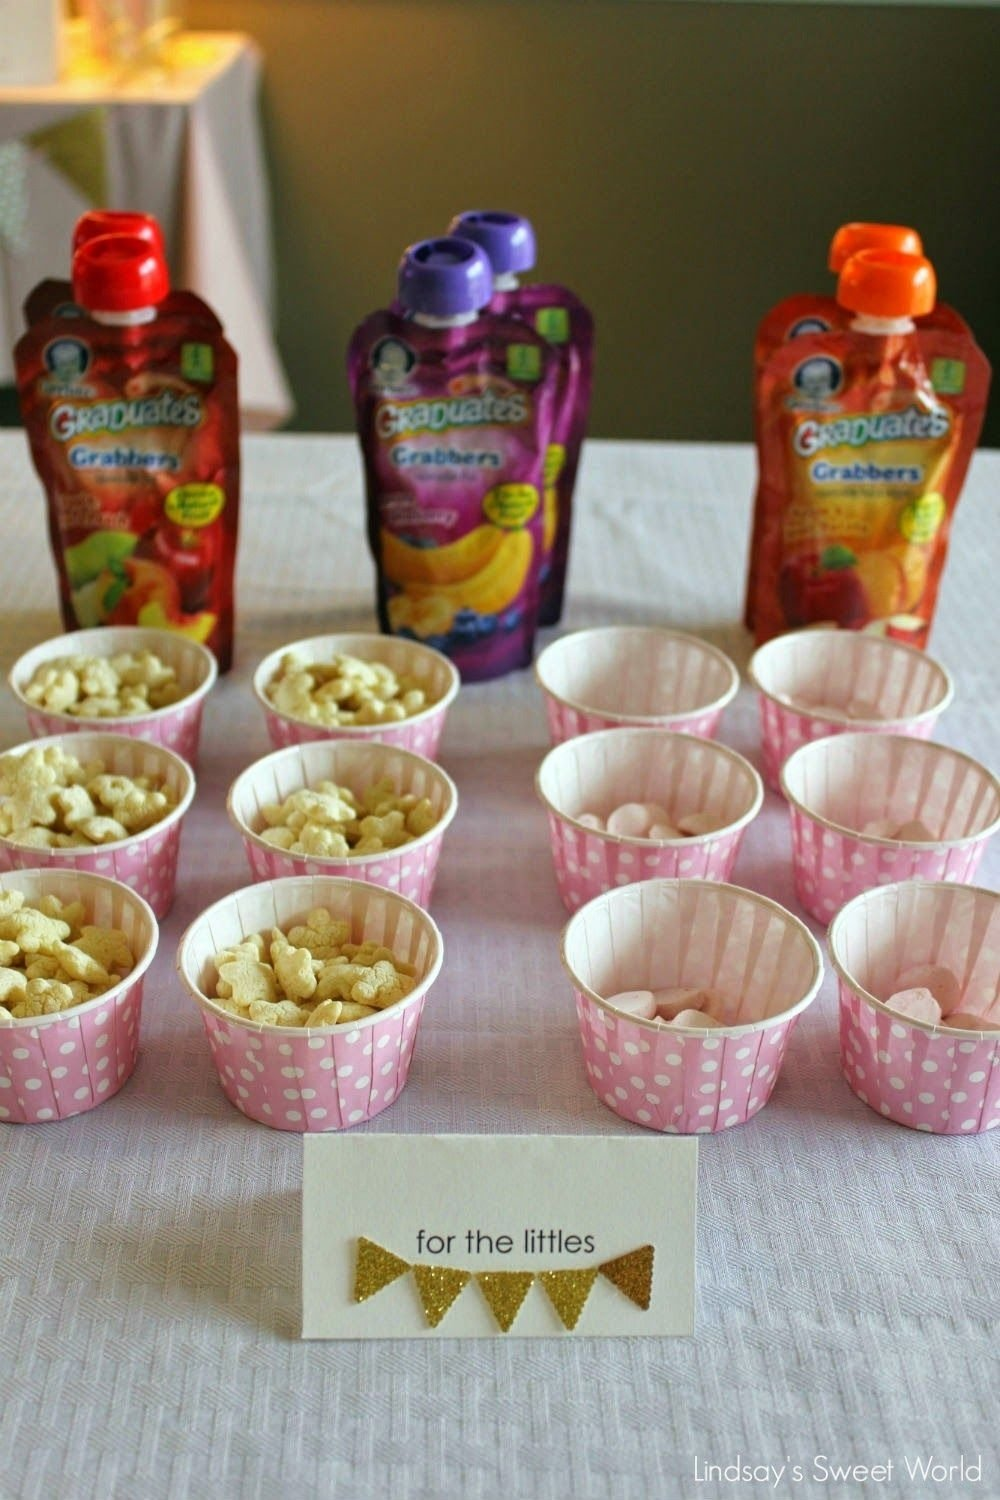 lindsay's sweet world: pink and gold first birthday party - food